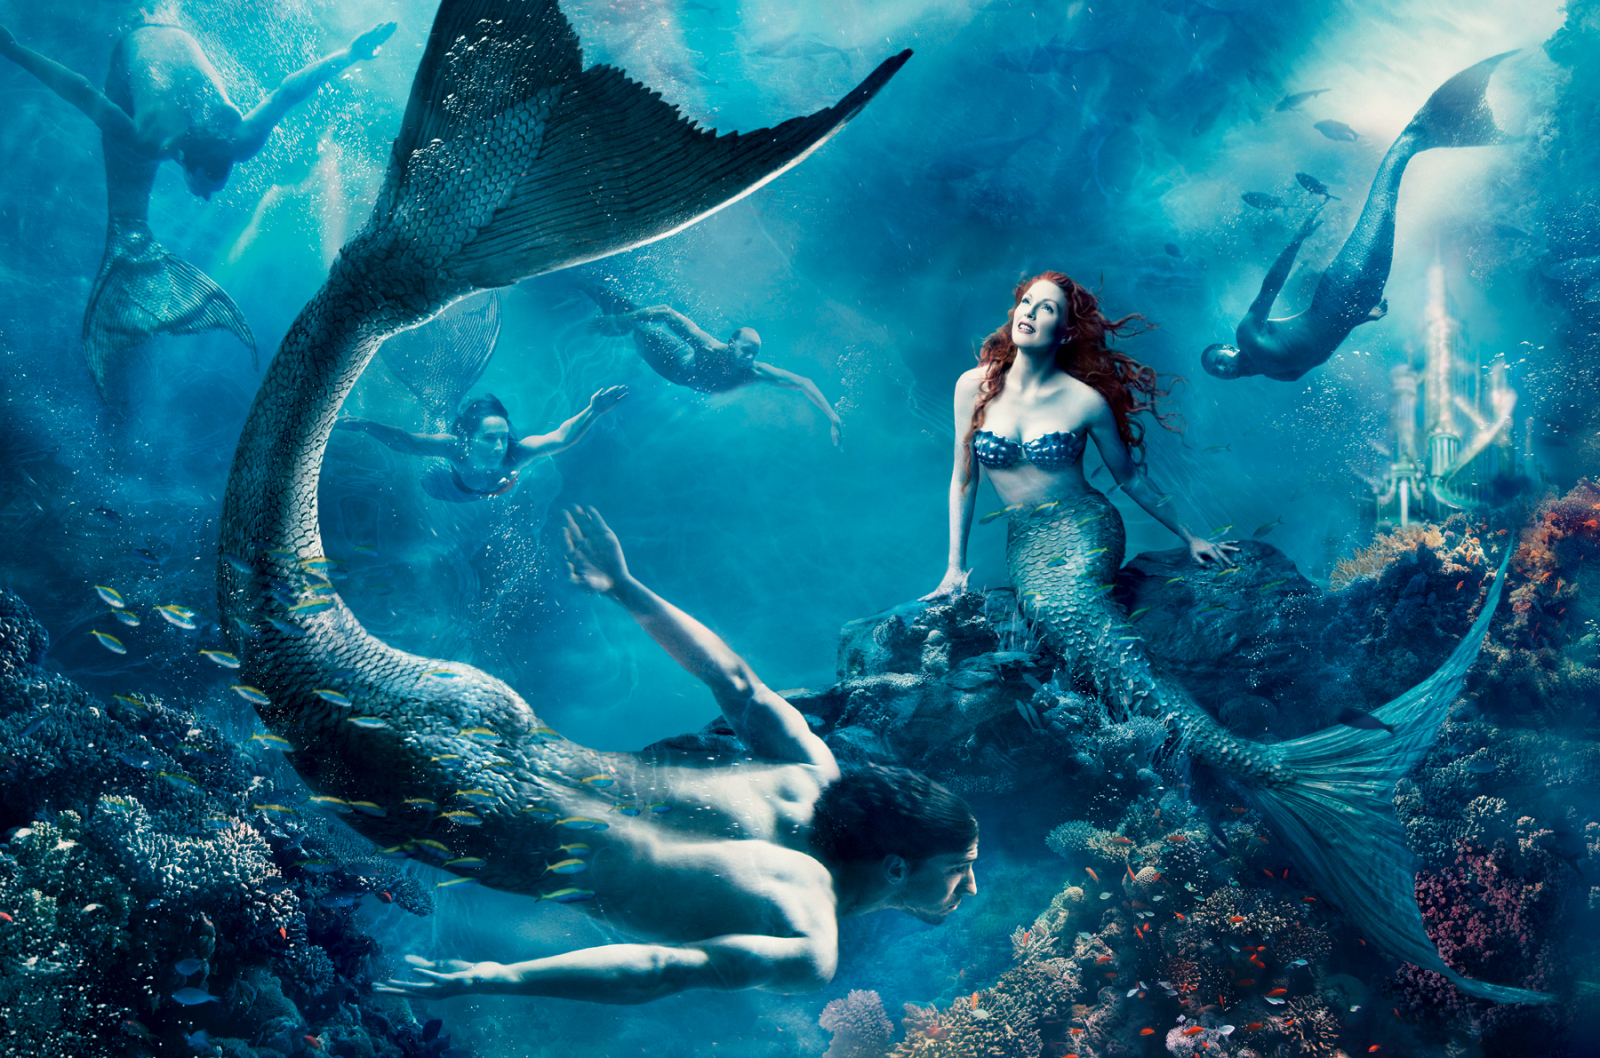 Annie Leibovitz images The Little Mermaid HD wallpaper and background photos (1518887)